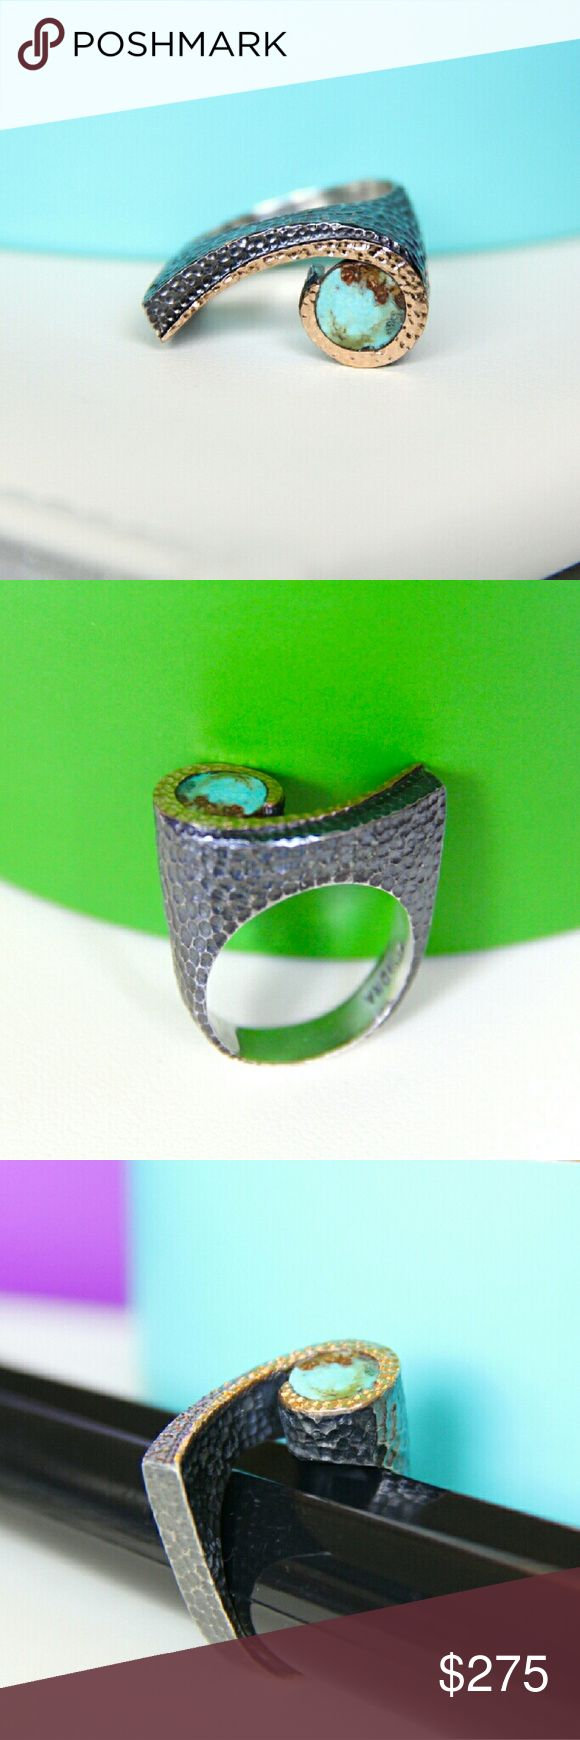 """BORA Handmade Turquoise 925 Silver & 24K Gold Ring **CHEAPER ON ETSY (Link in profile)***   Handmade by Bora.  Size: 8.5  Solid 925 silver (oxidized) with 24K accents.   Stones: Persian Turquoise.  1""""X0.75"""" - 11.95 grams.  Bora's designs are gorgeously bohemian, inspired by the Ottoman and Byzantine empires with a modern touch. Similar to Konstantino, these pieces are wearable art. And unlike Konstantino, each piece is one-of-a-kind. 100% authentic and in brand new condition. Stamped with…"""